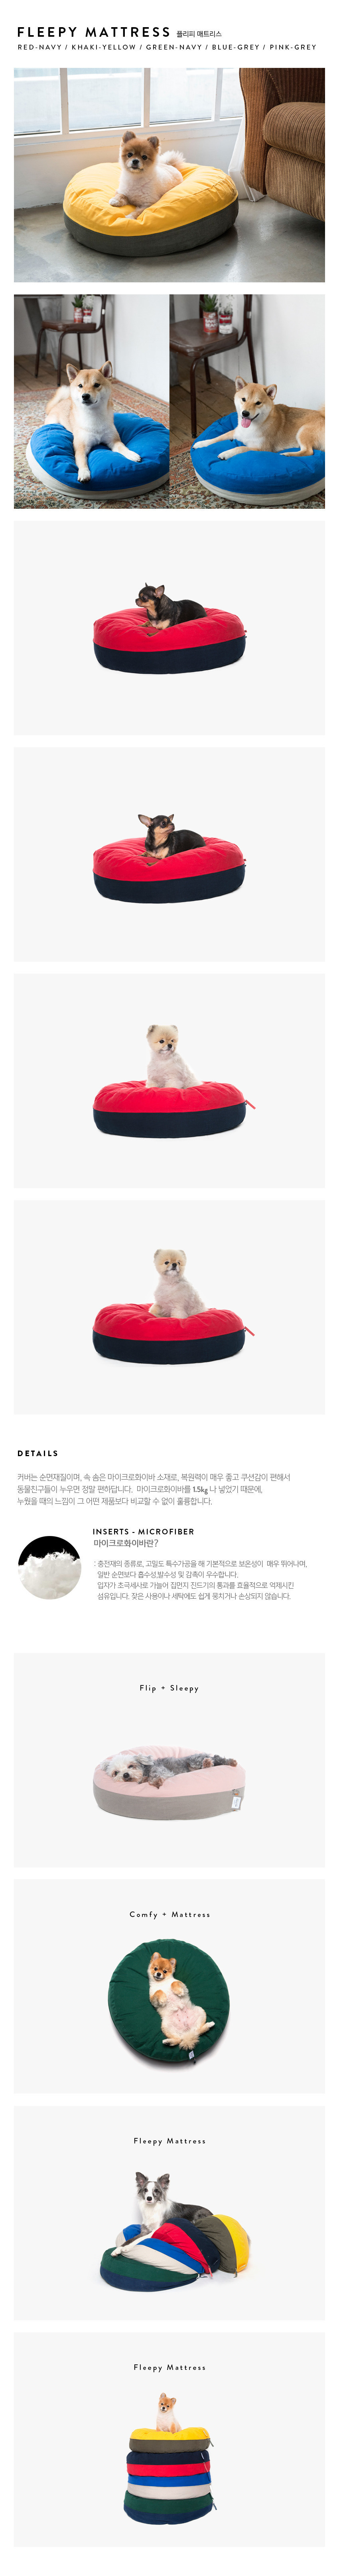 베럴즈(BETTERS) Fleepy Mattress Set (Red/Navy)